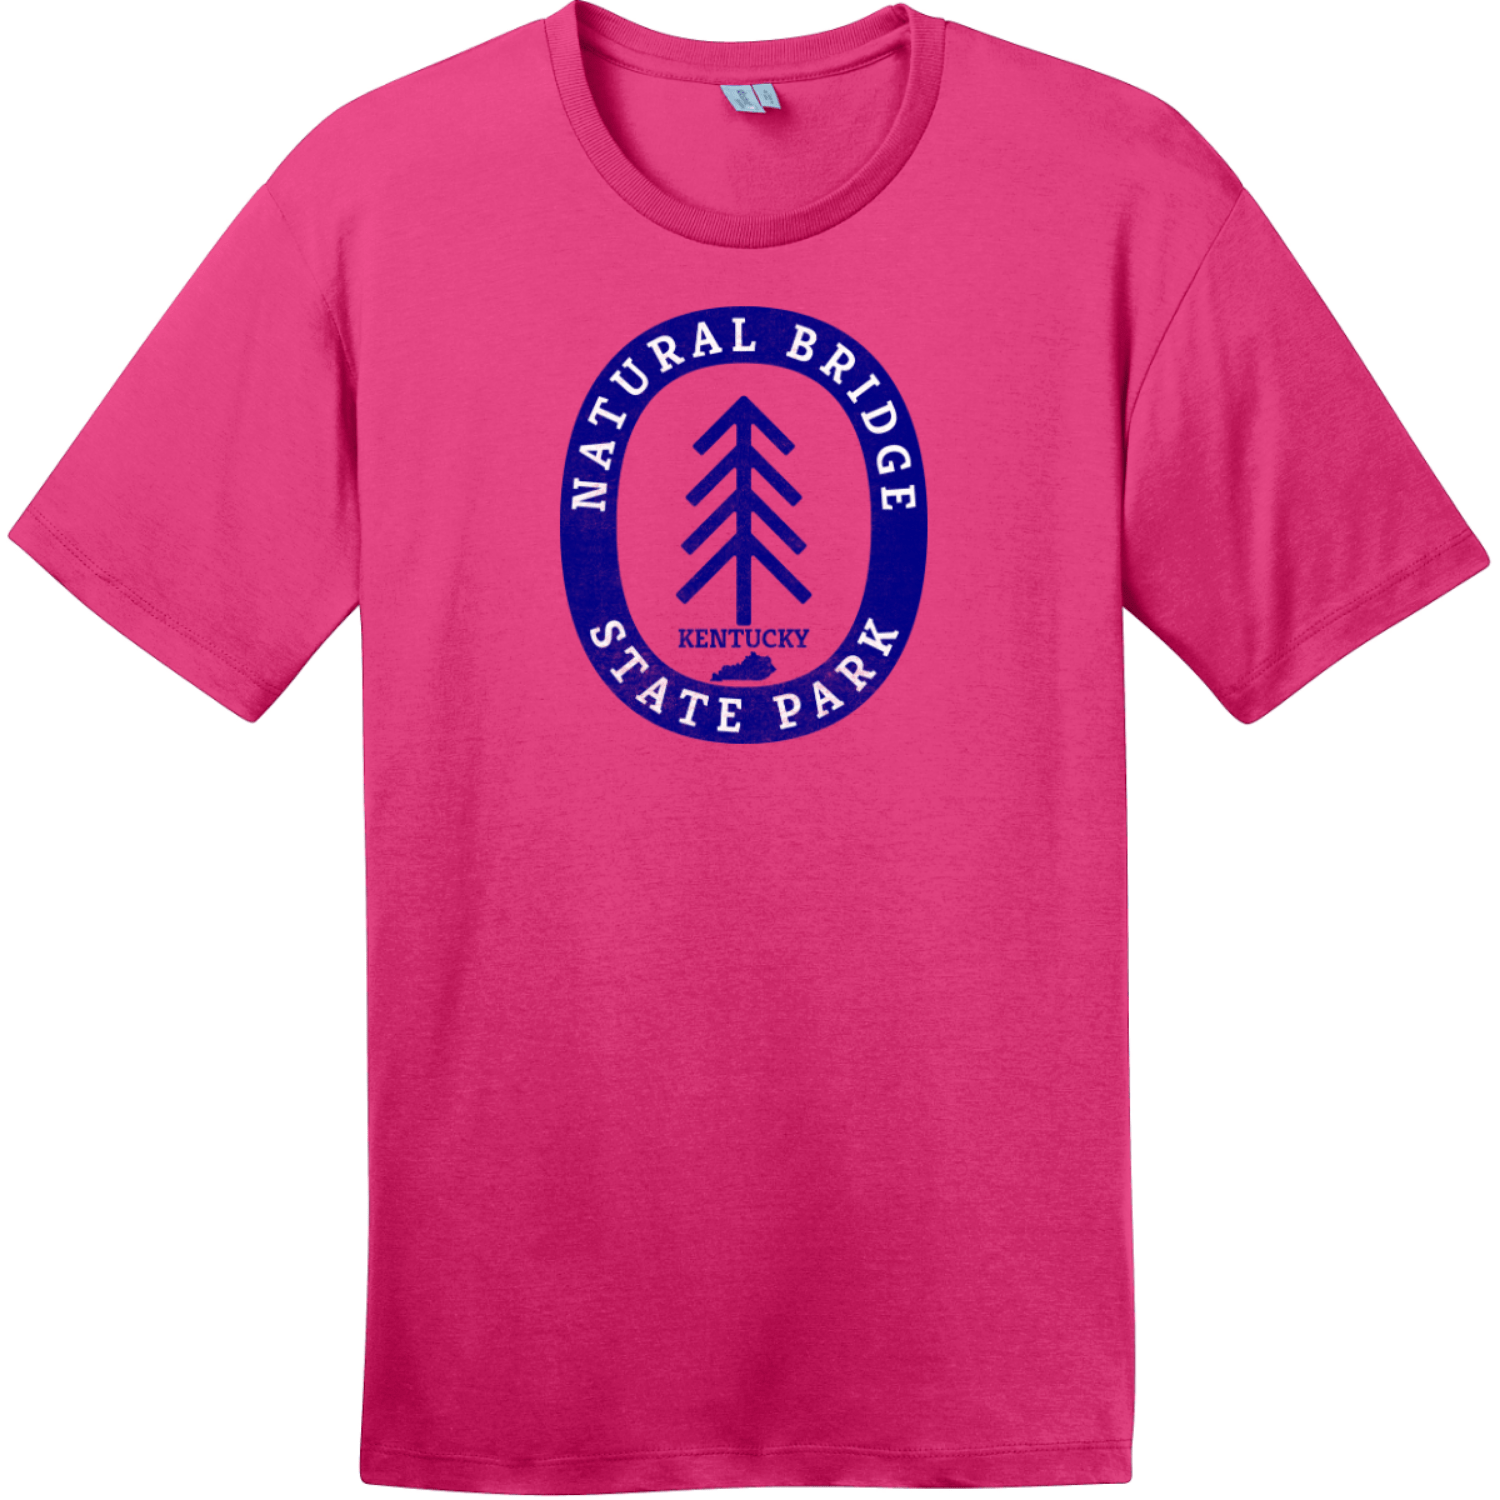 Natural Bridge State Park T-Shirt Dark Fuchsia District Perfect Weight Tee DT104